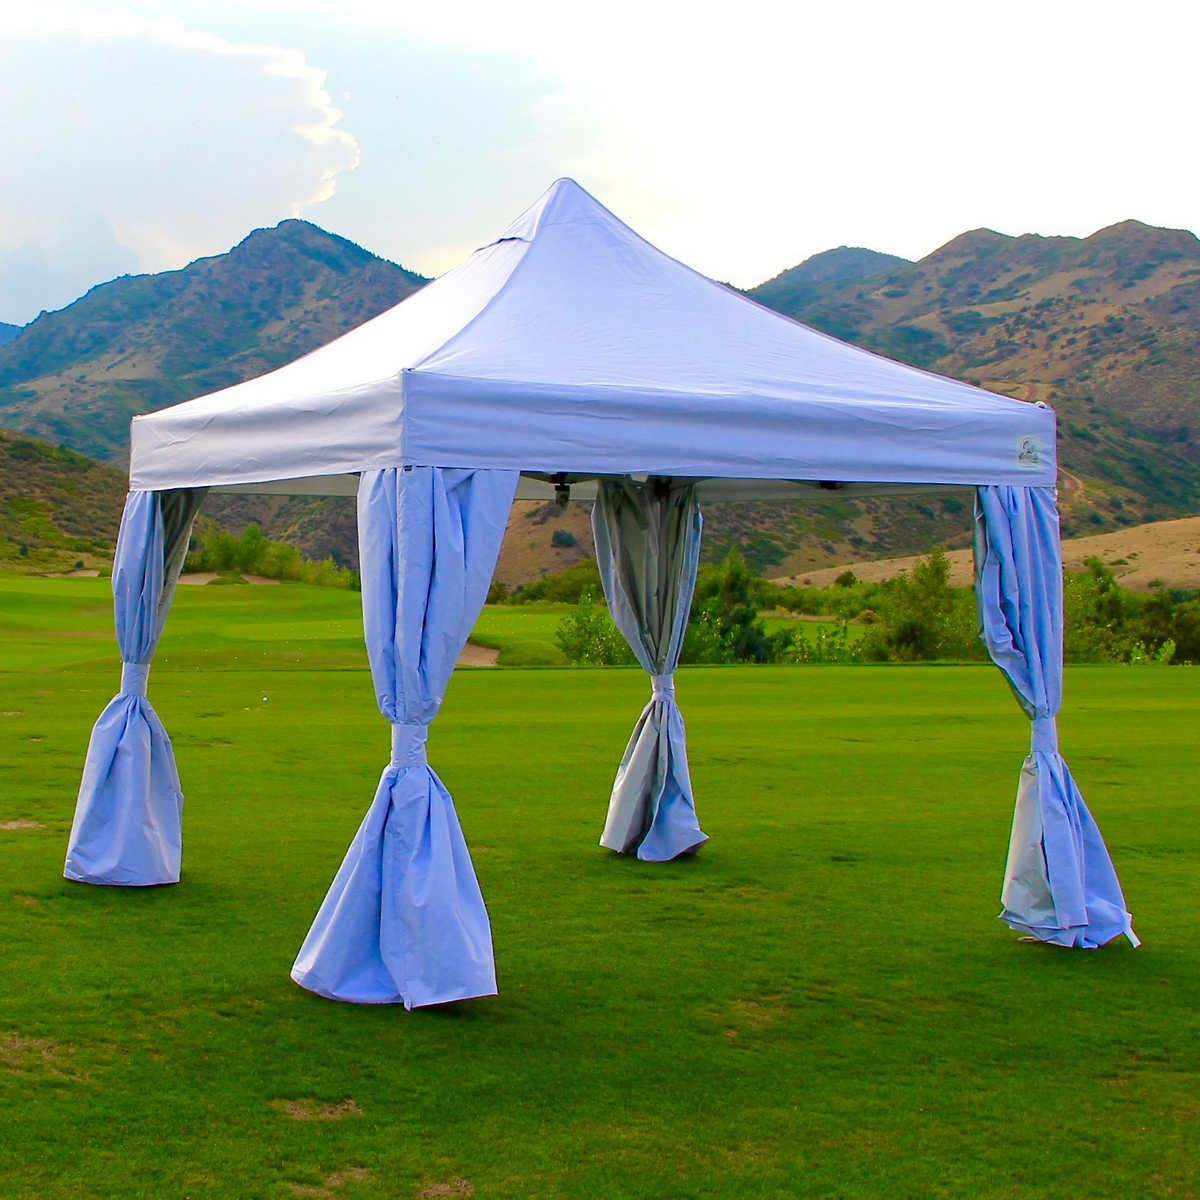 Undercover 10 X 10 Instant Canopy With Side Walls In 2020 Instant Canopy Canopy Tailgate Tent